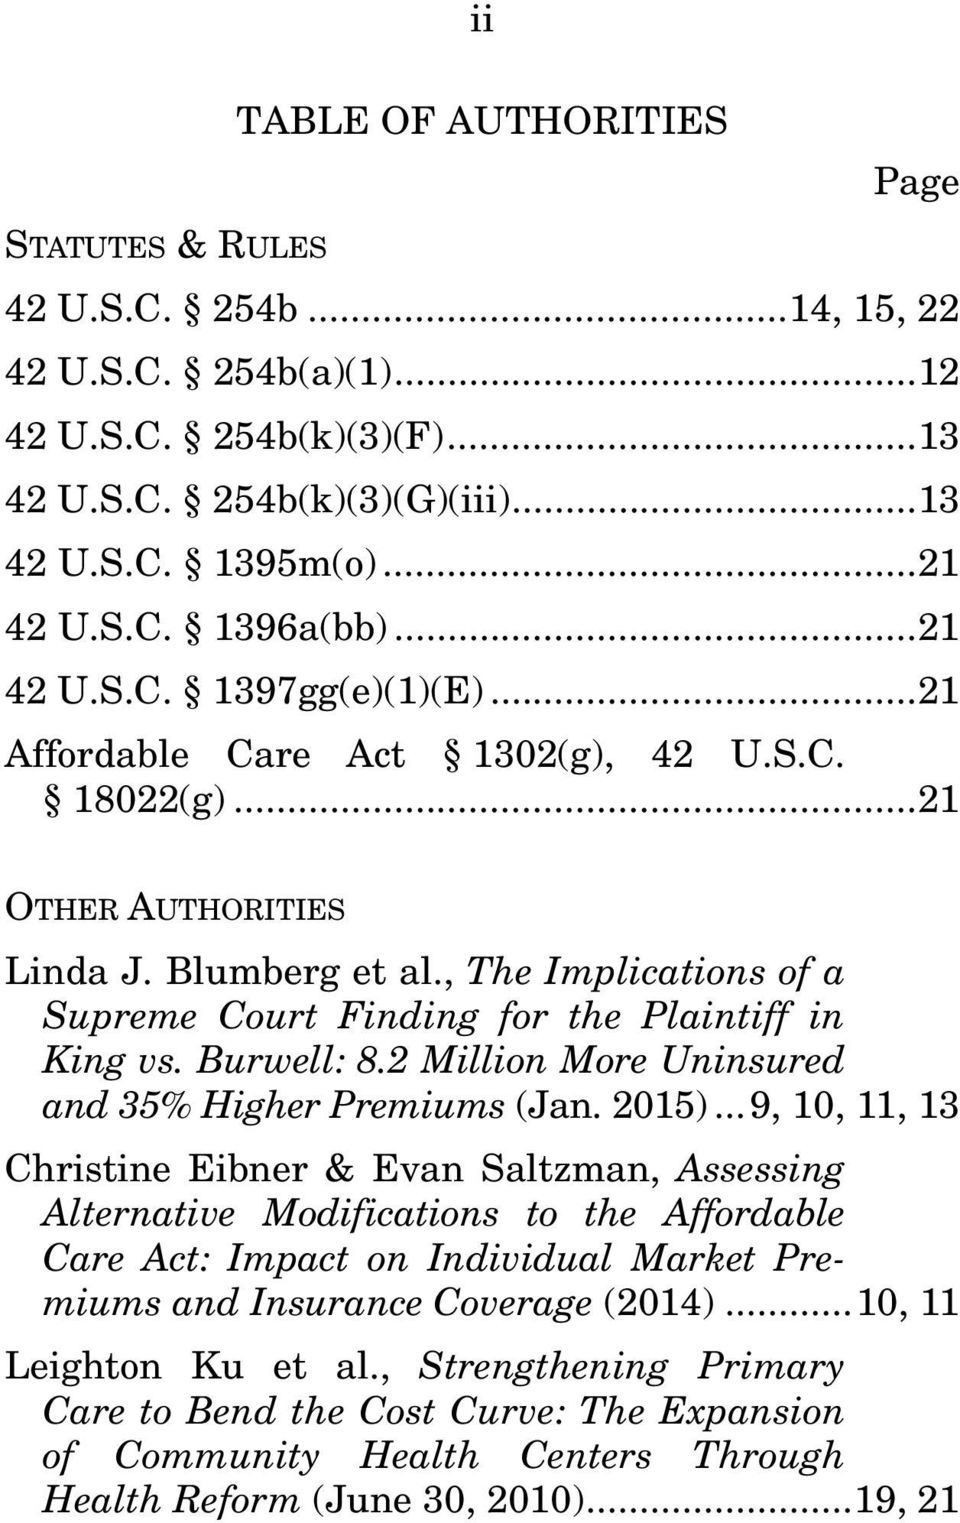 , The Implications of a Supreme Court Finding for the Plaintiff in King vs. Burwell: 8.2 Million More Uninsured and 35% Higher Premiums (Jan. 2015).